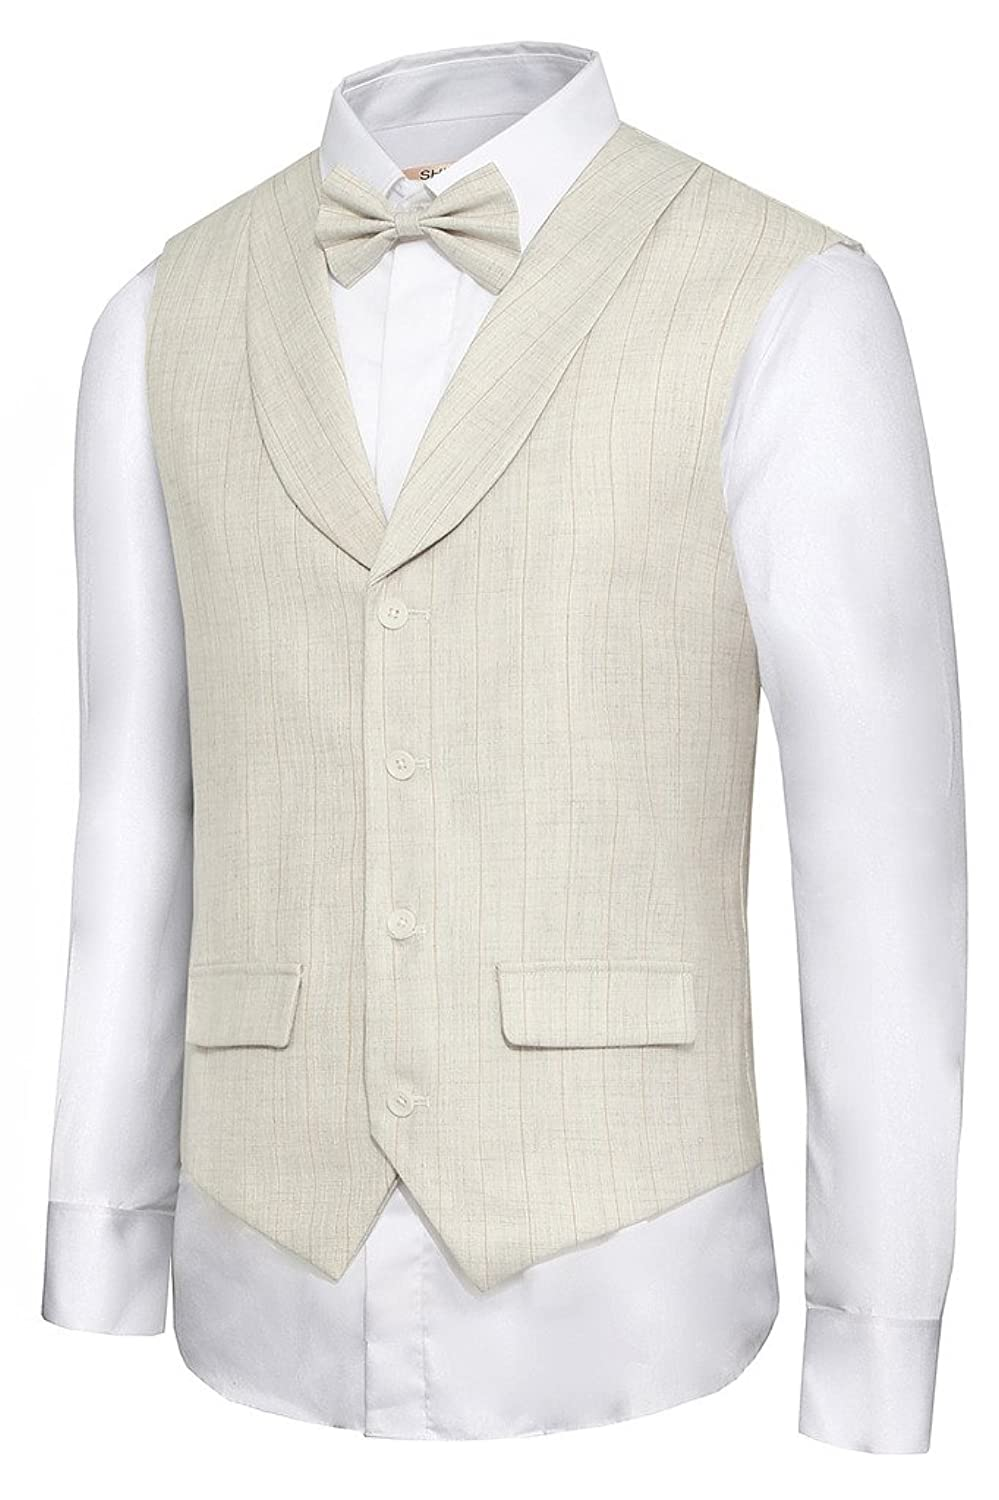 Men's Vintage Inspired Vests Hanayome Mens British Style Slim Fit Chain Point 4 Button Patry Dress vest VS09£¨BeigeM) $28.50 AT vintagedancer.com